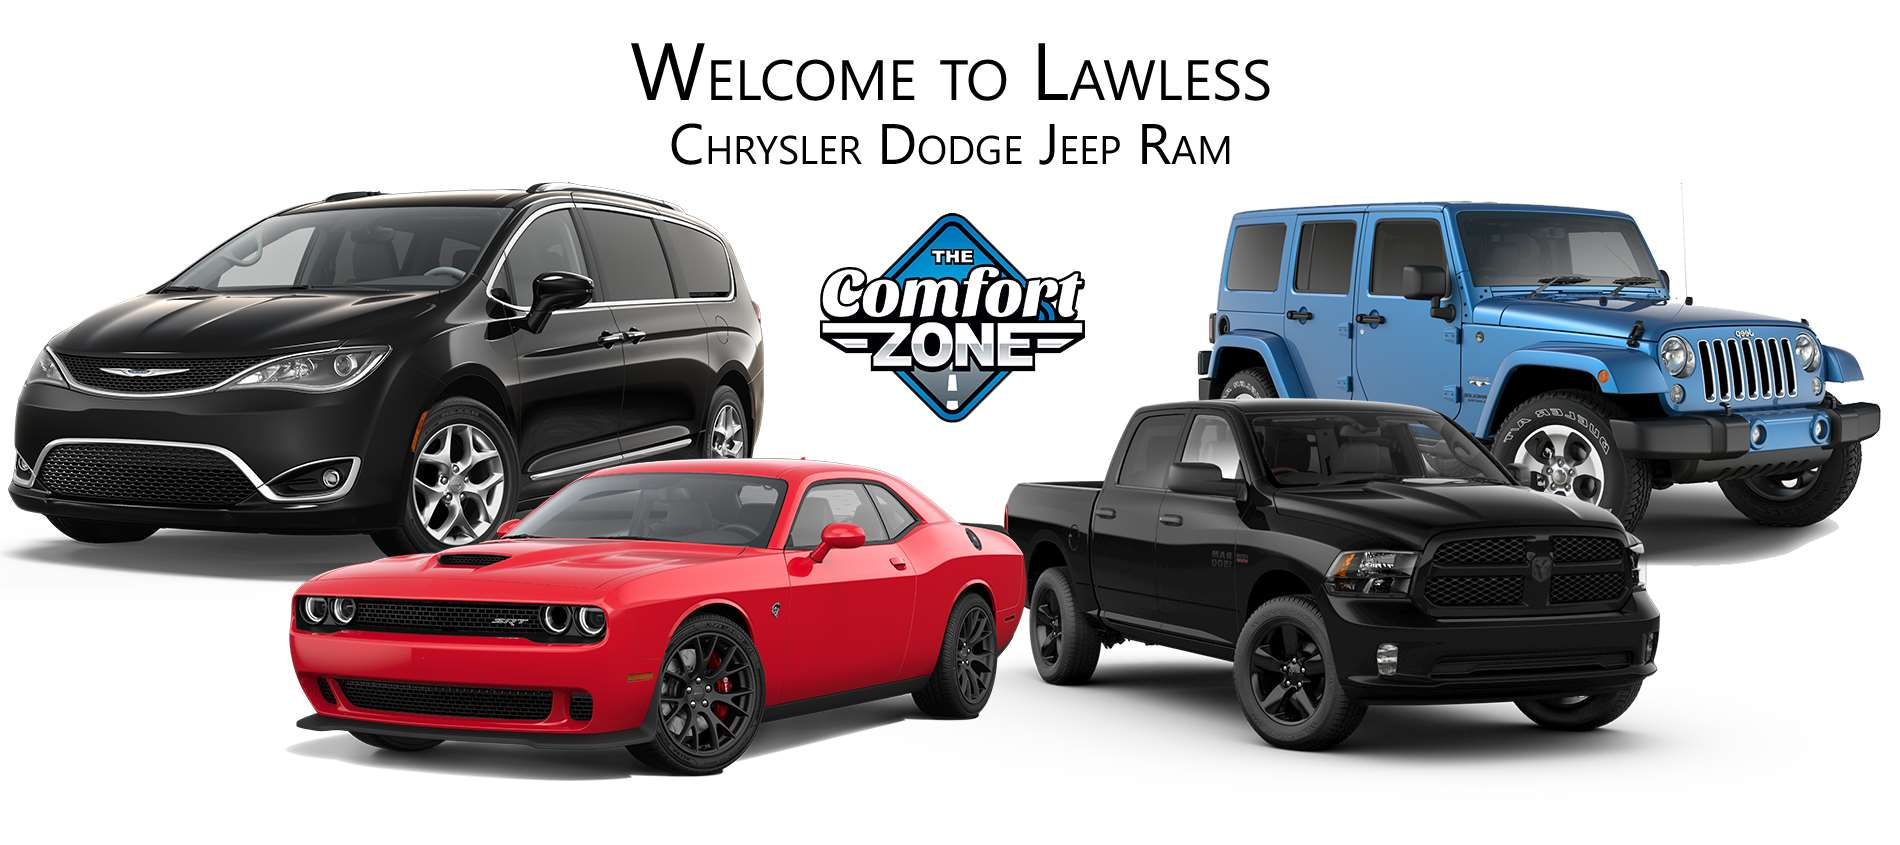 Lawless Chrysler Dodge Jeep Ram Dealer Woburn MA